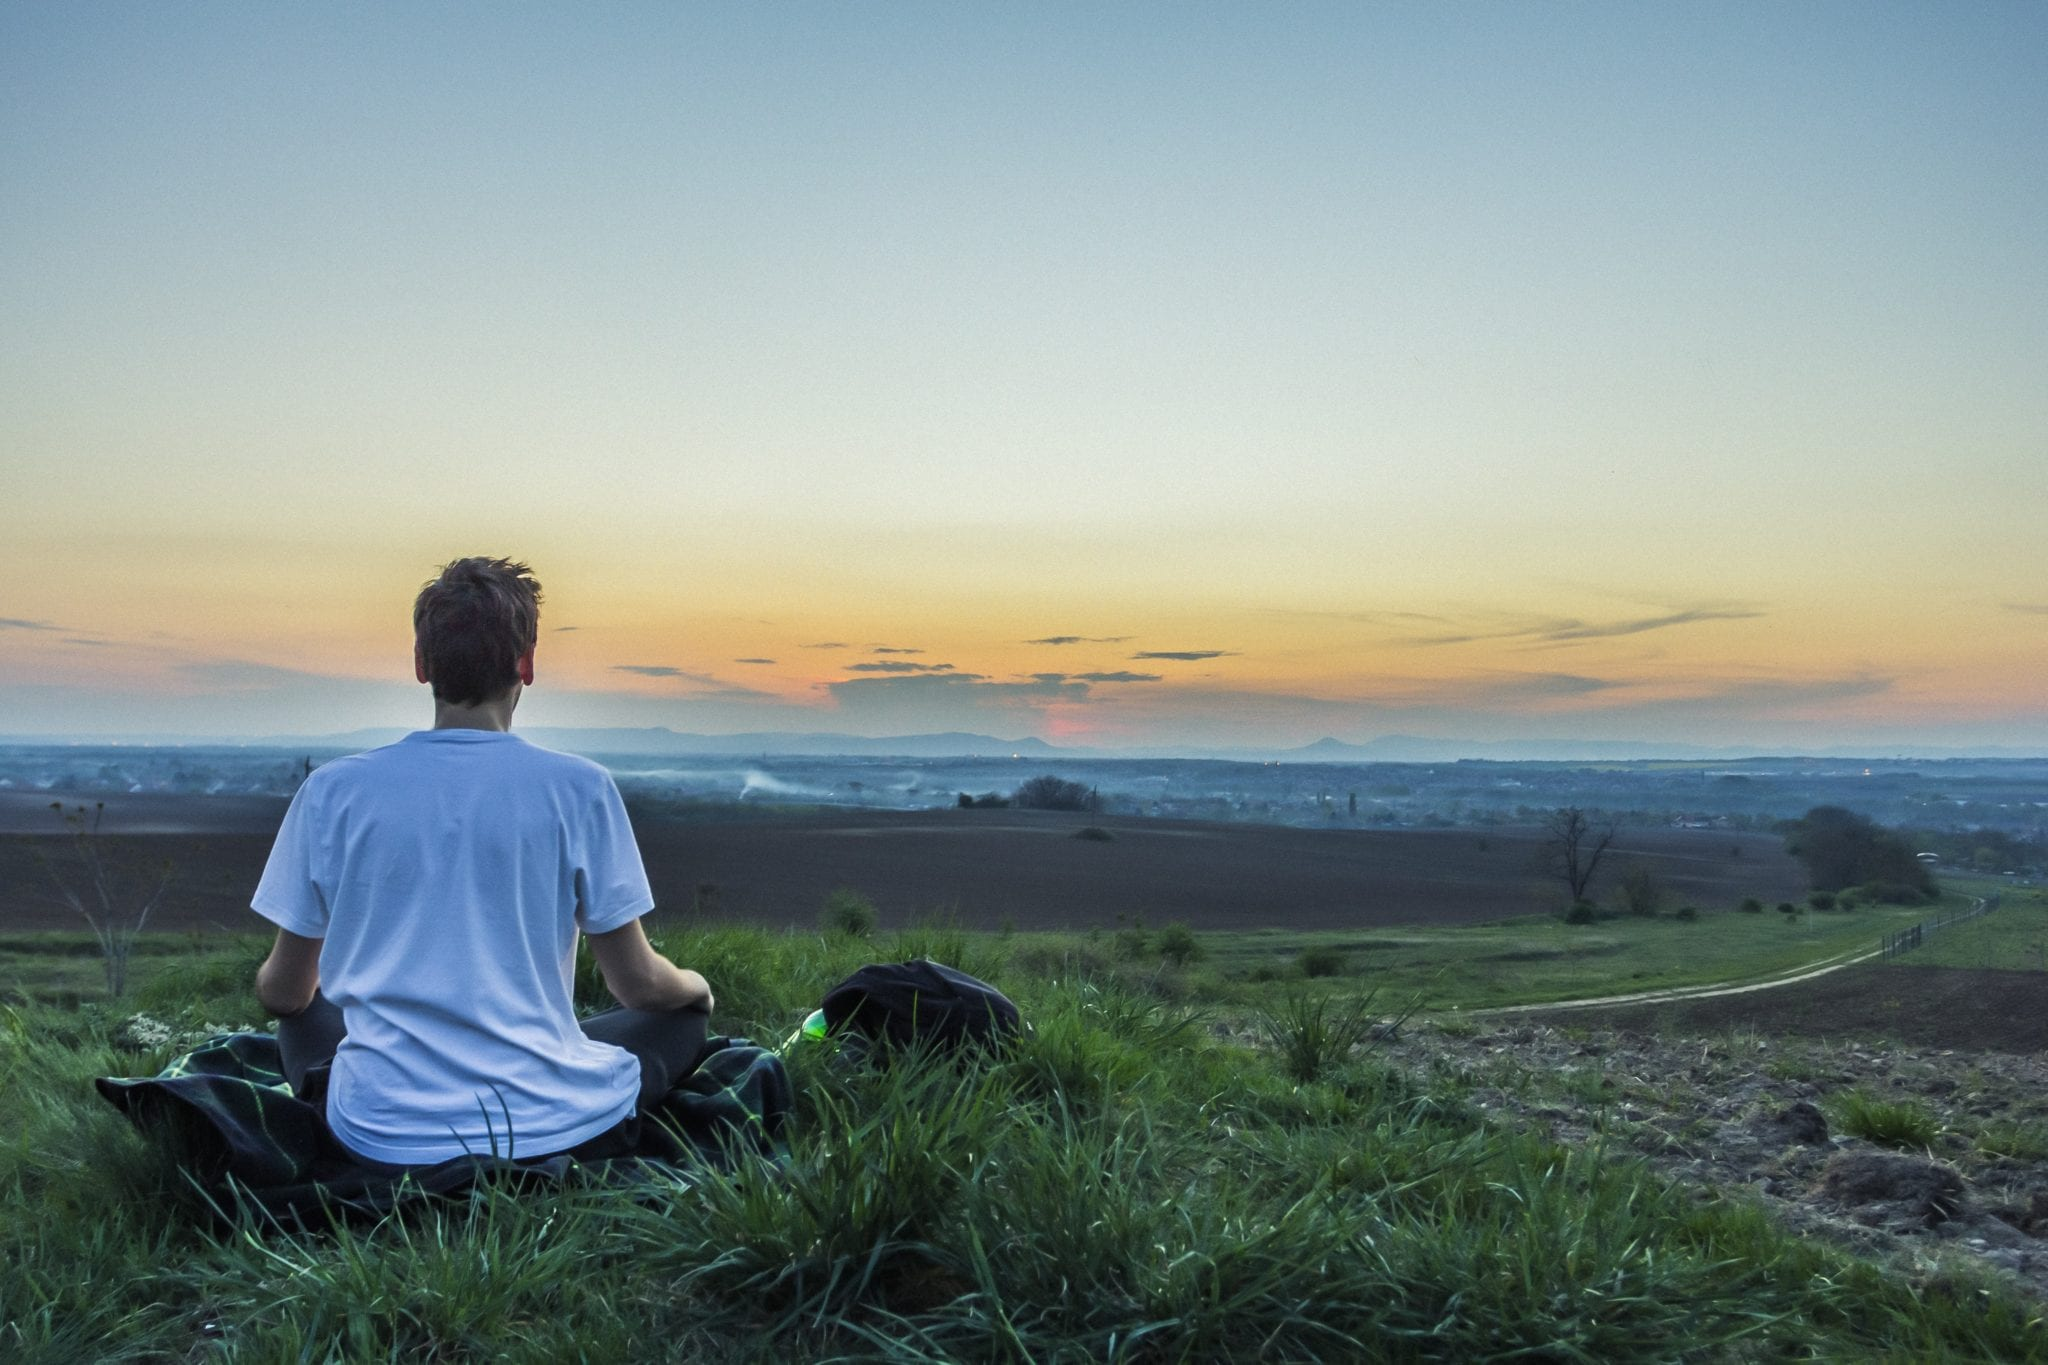 Man sitting and meditating towards the mountains